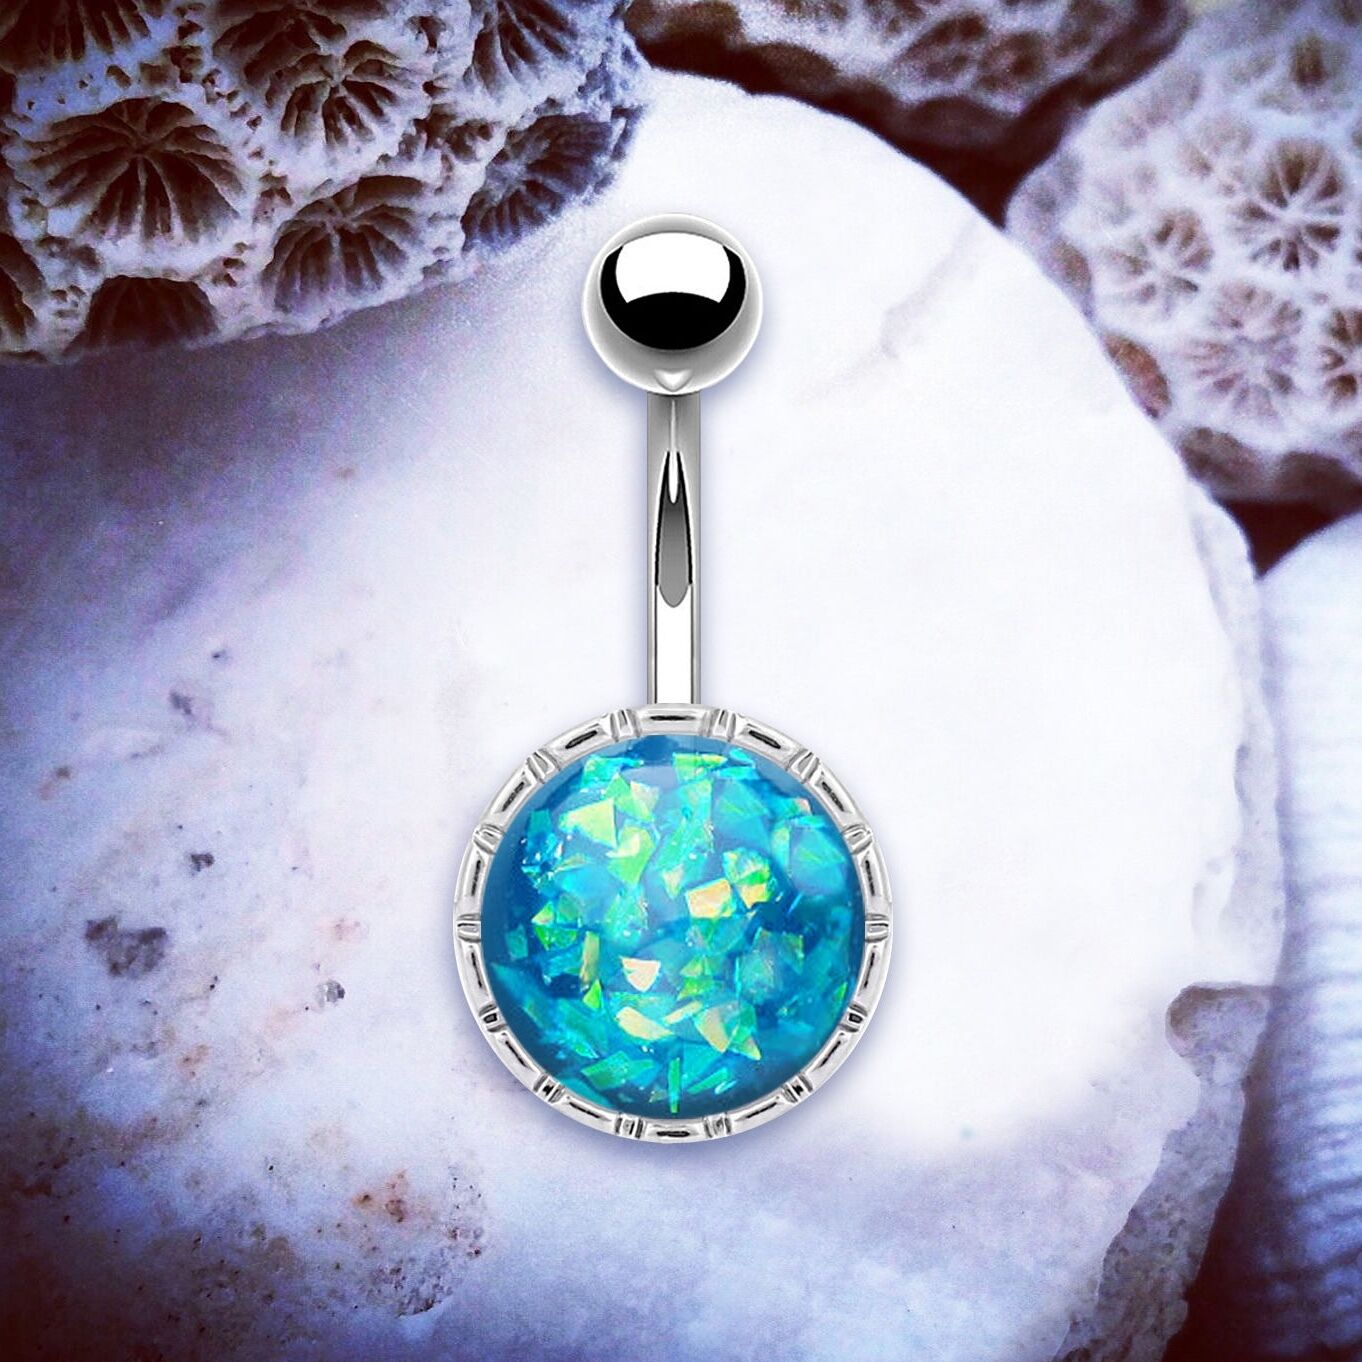 Details About Orla Blue Opal Belly Bar Faux Opal Belly Ring Silver Navel Ring Festival Rings